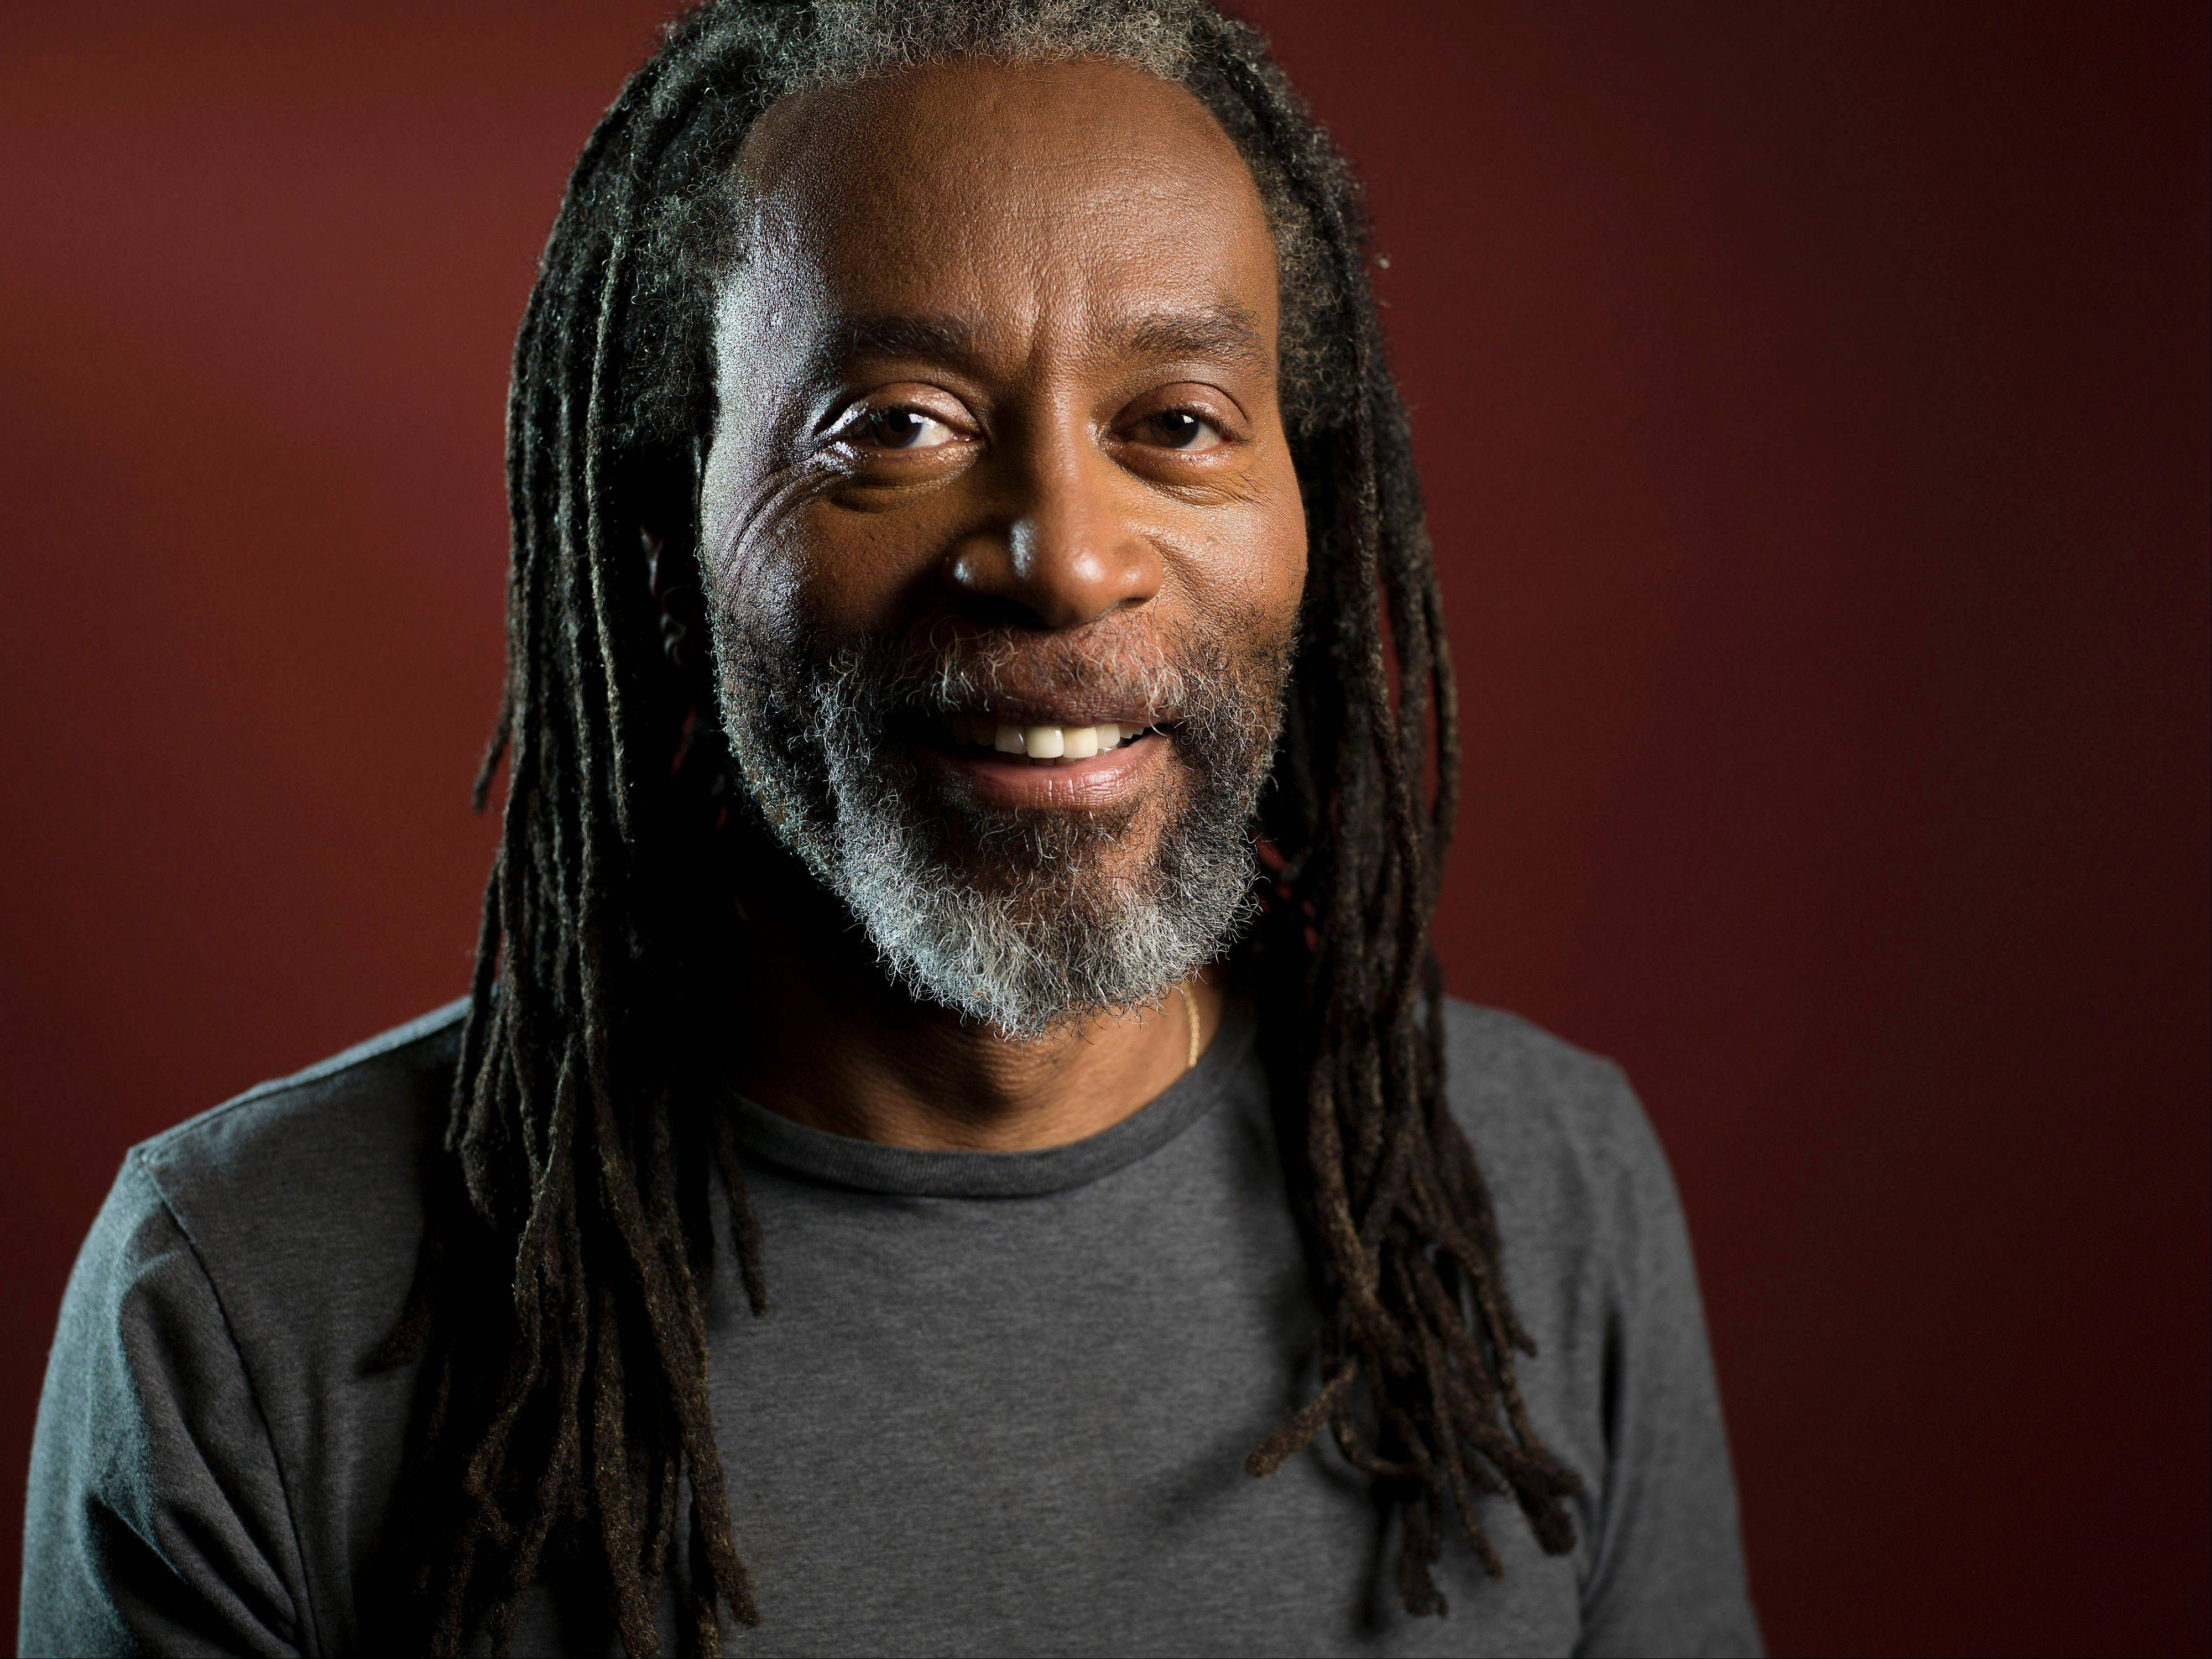 This May 6, 2013 photo shows musician Bobby McFerrin posing for a portrait in New York. The 10-time Grammy Award-winning musician recently released his 14th album, �spirityouall,� a CD that�s dedicated it to the legacy of his father, the Metropolitan Opera Baritone Robert McFerrin, Sr. (Photo by Scott Gries/Invision/AP)